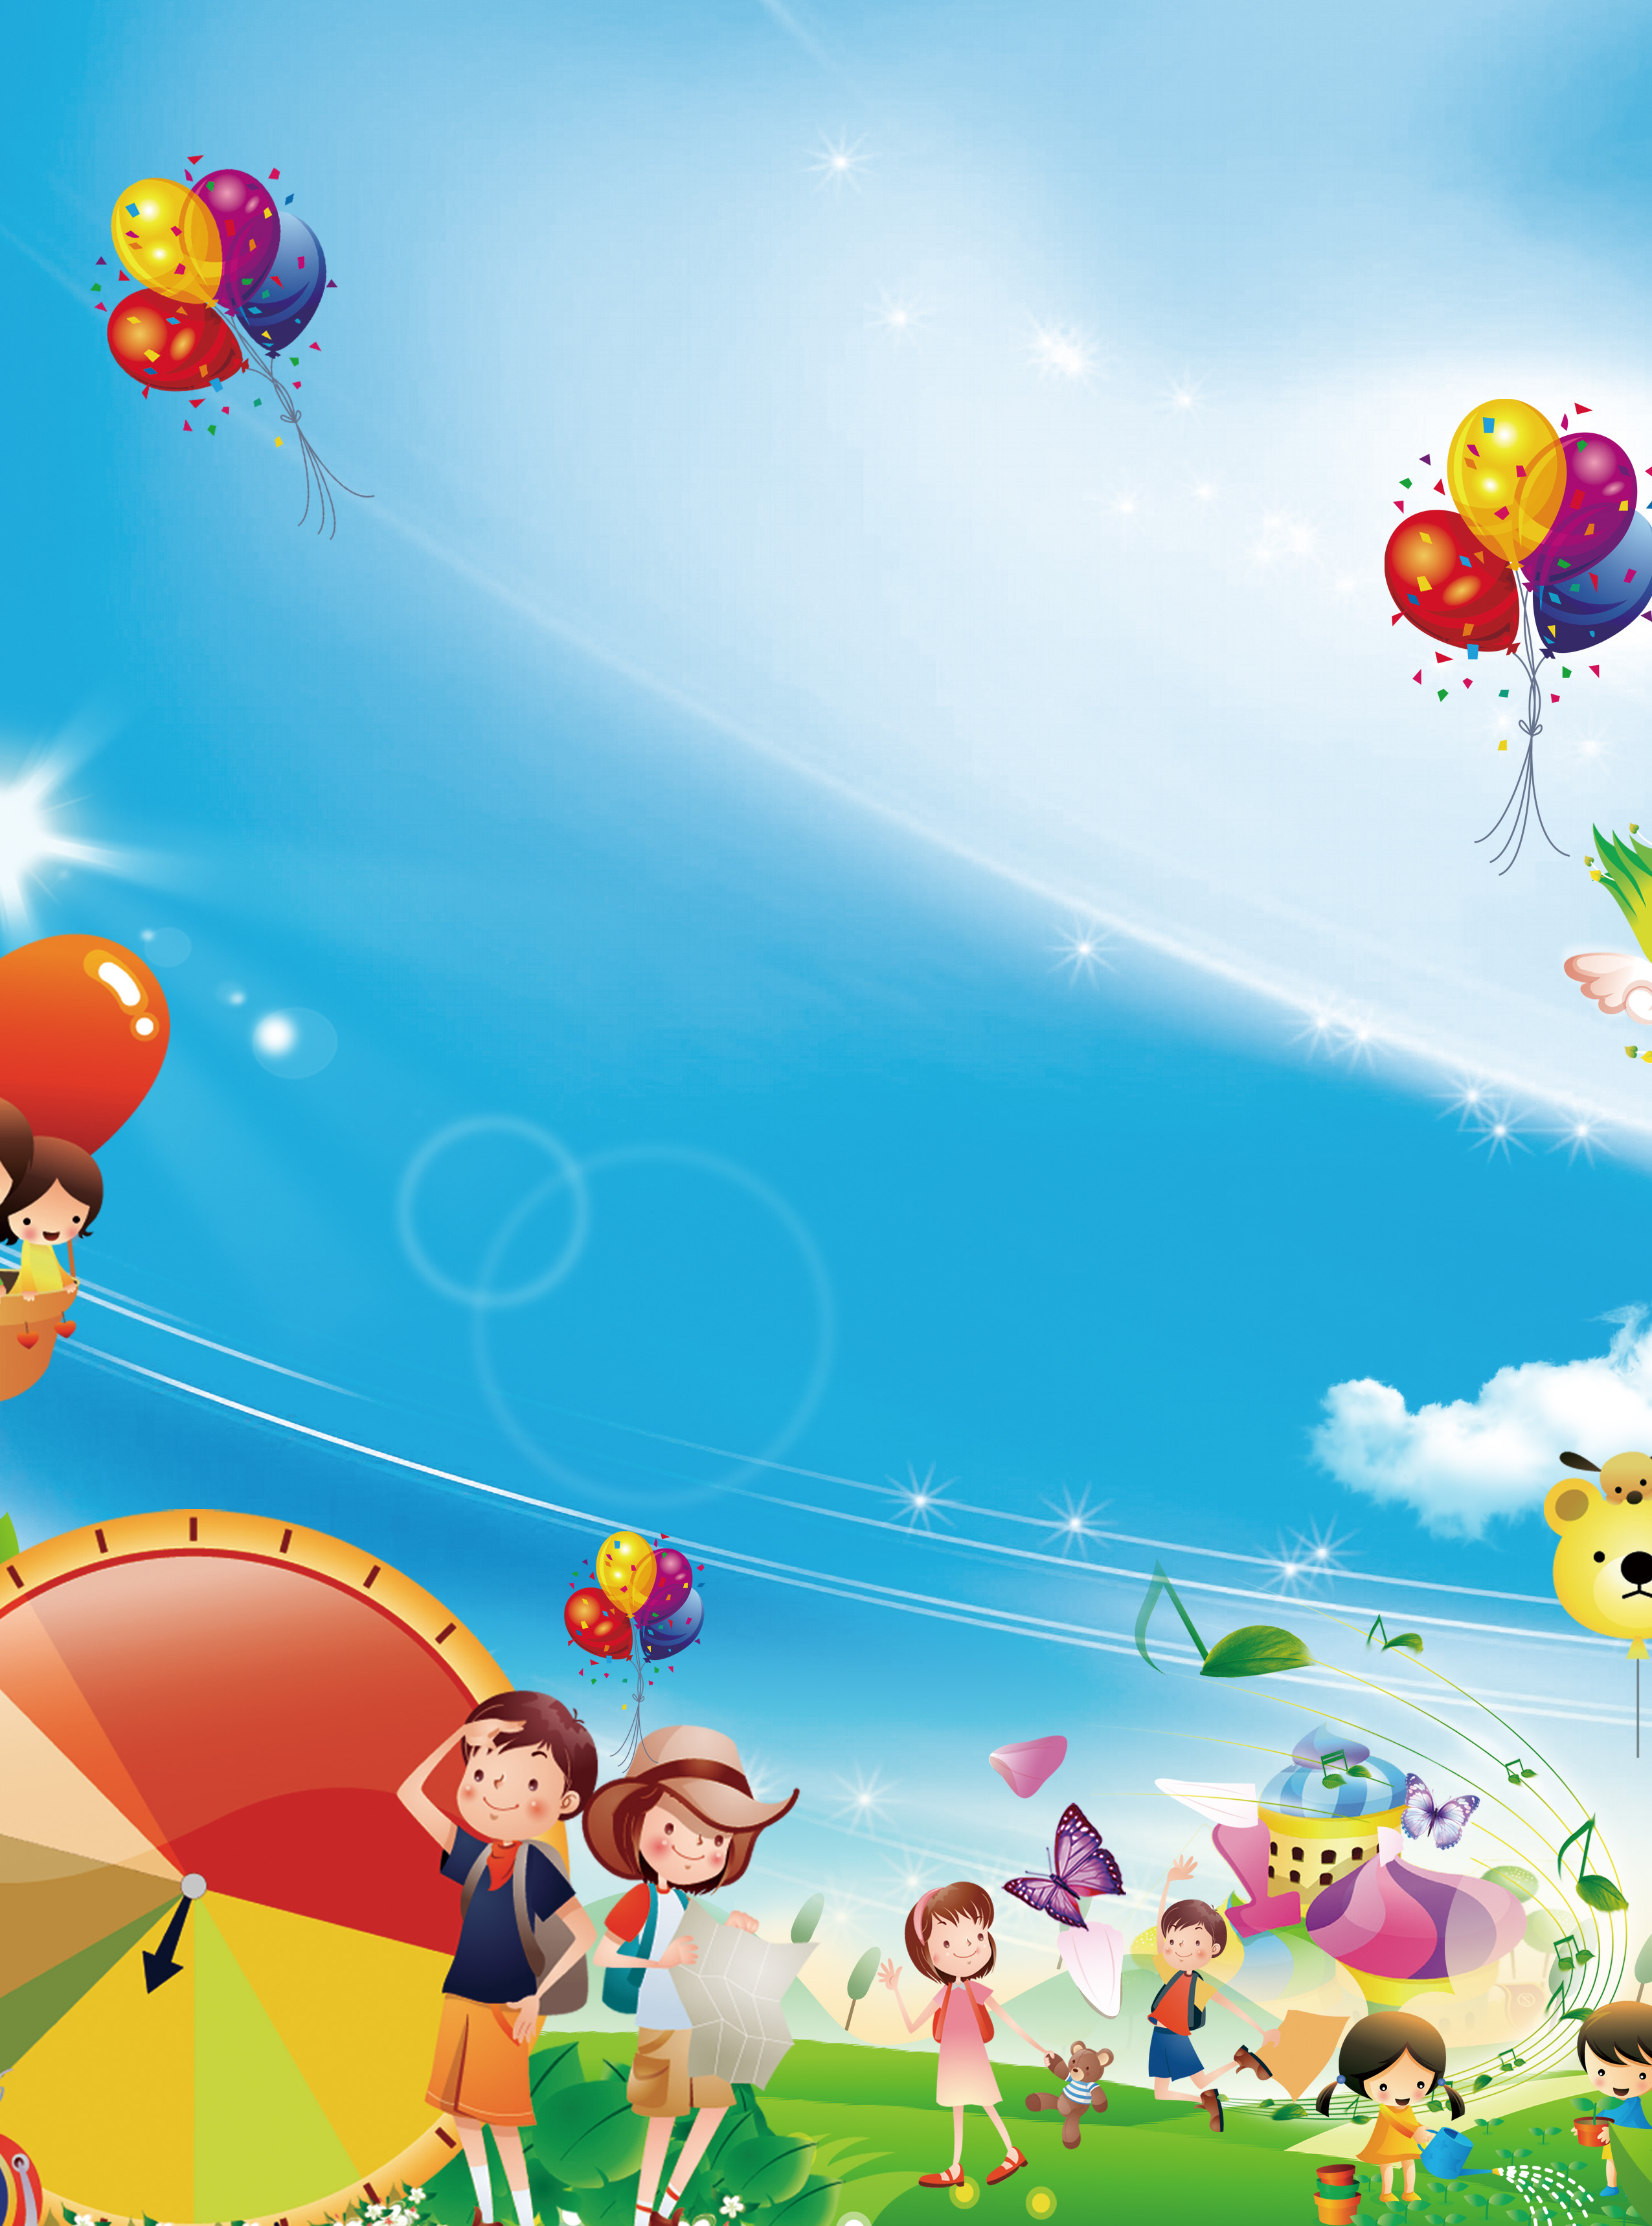 Childrens painting competition poster background material sixtyone childrens single - Children s day images download ...